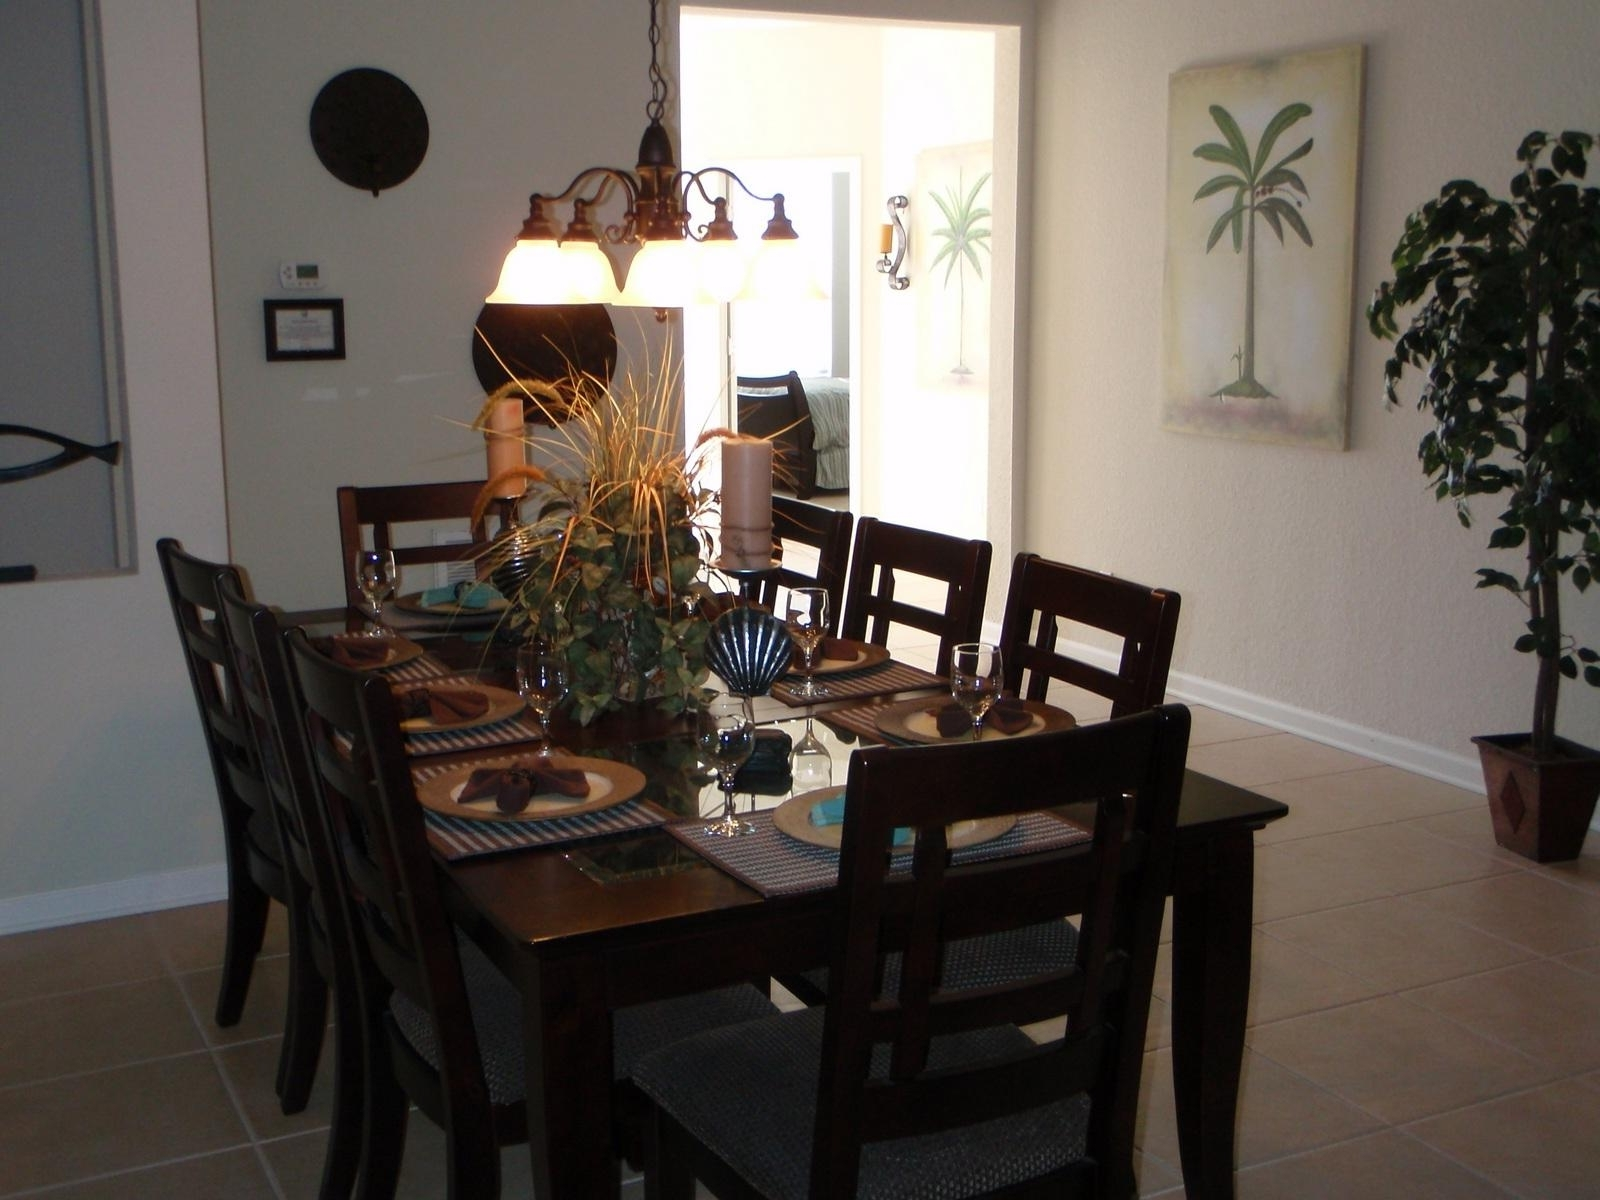 Well Known White Dining Tables 8 Seater For 8 Seater Dining Table With Rough Tile Flooring And Chandelier Over (View 13 of 25)